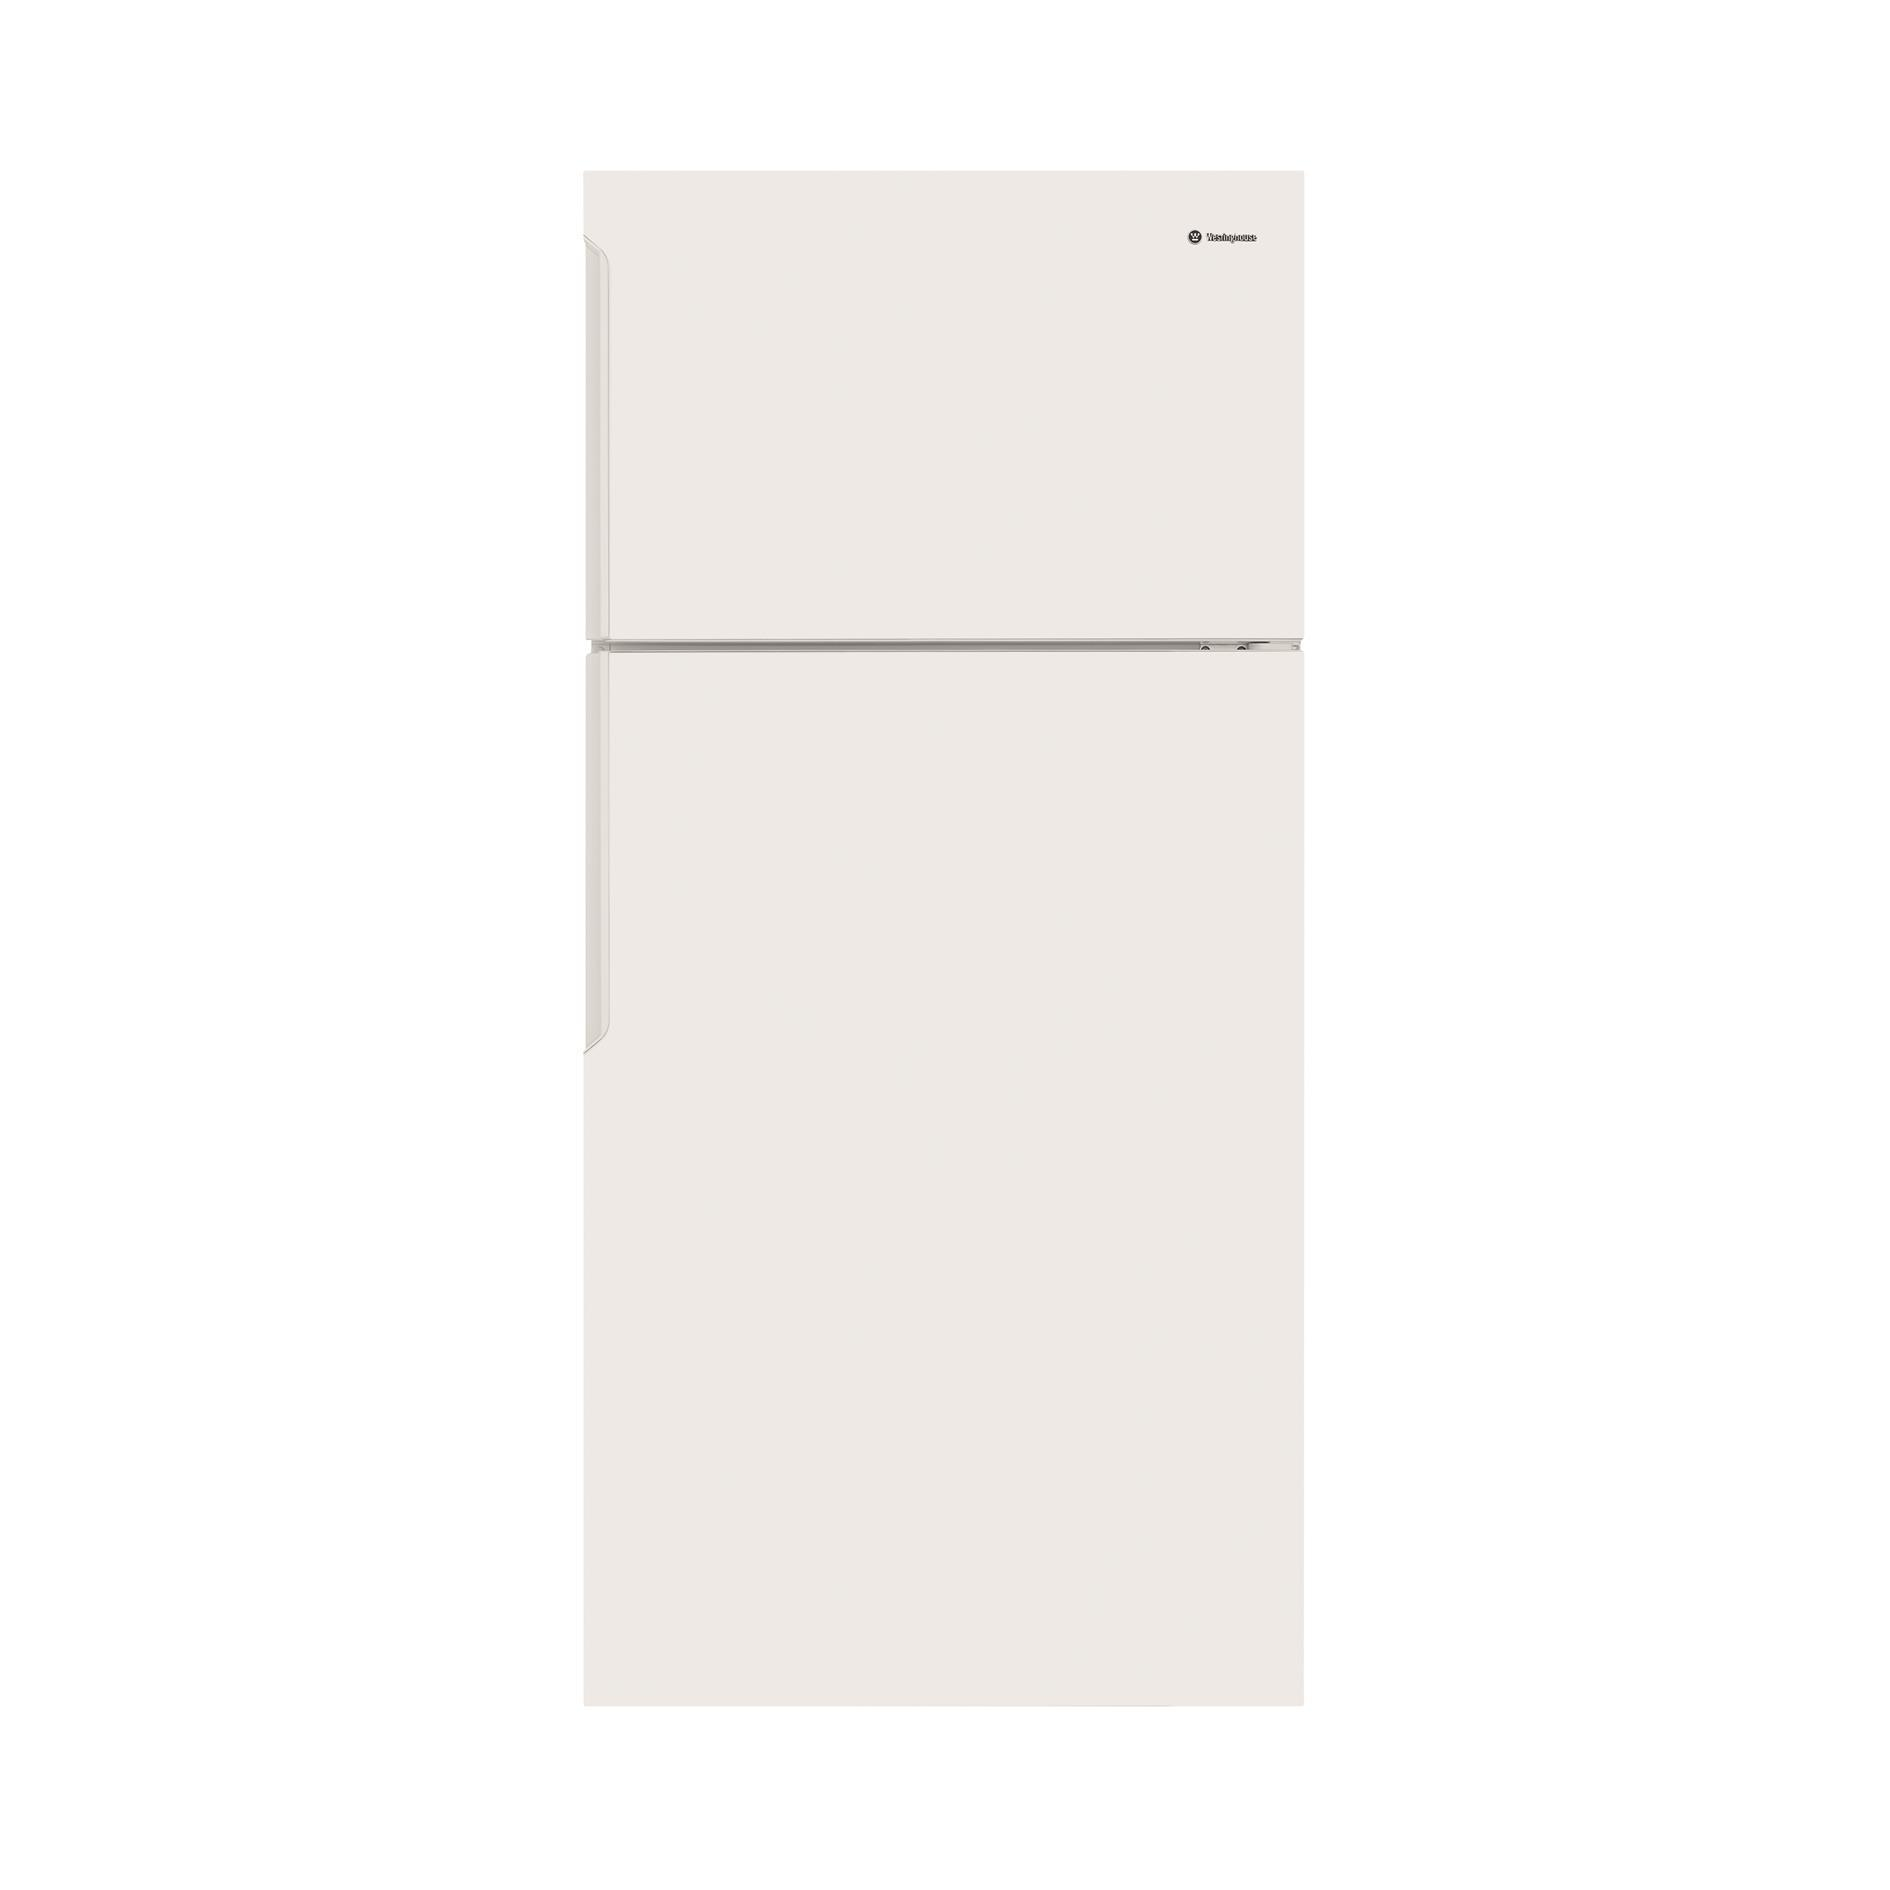 Westinghouse WTB5400WB 536L Top Mount Fridge (White) [Right]